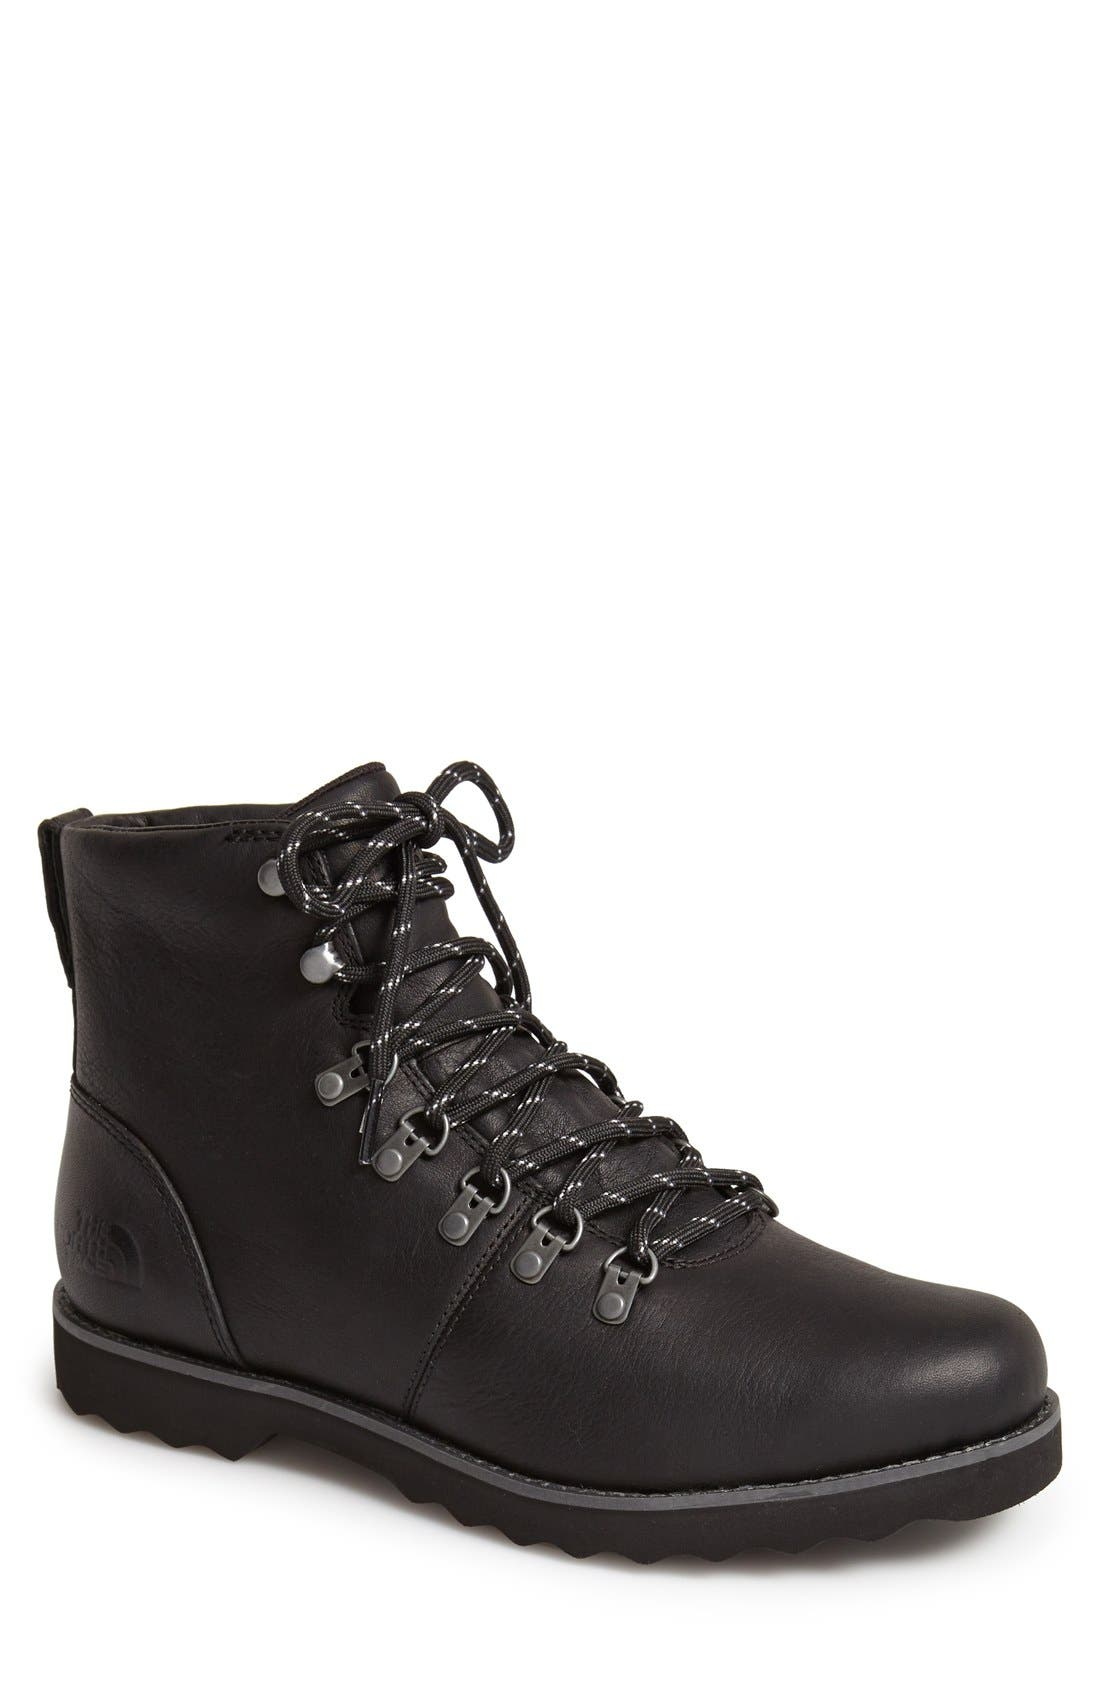 'Ballard II' Waterproof Leather Boot,                             Main thumbnail 1, color,                             001